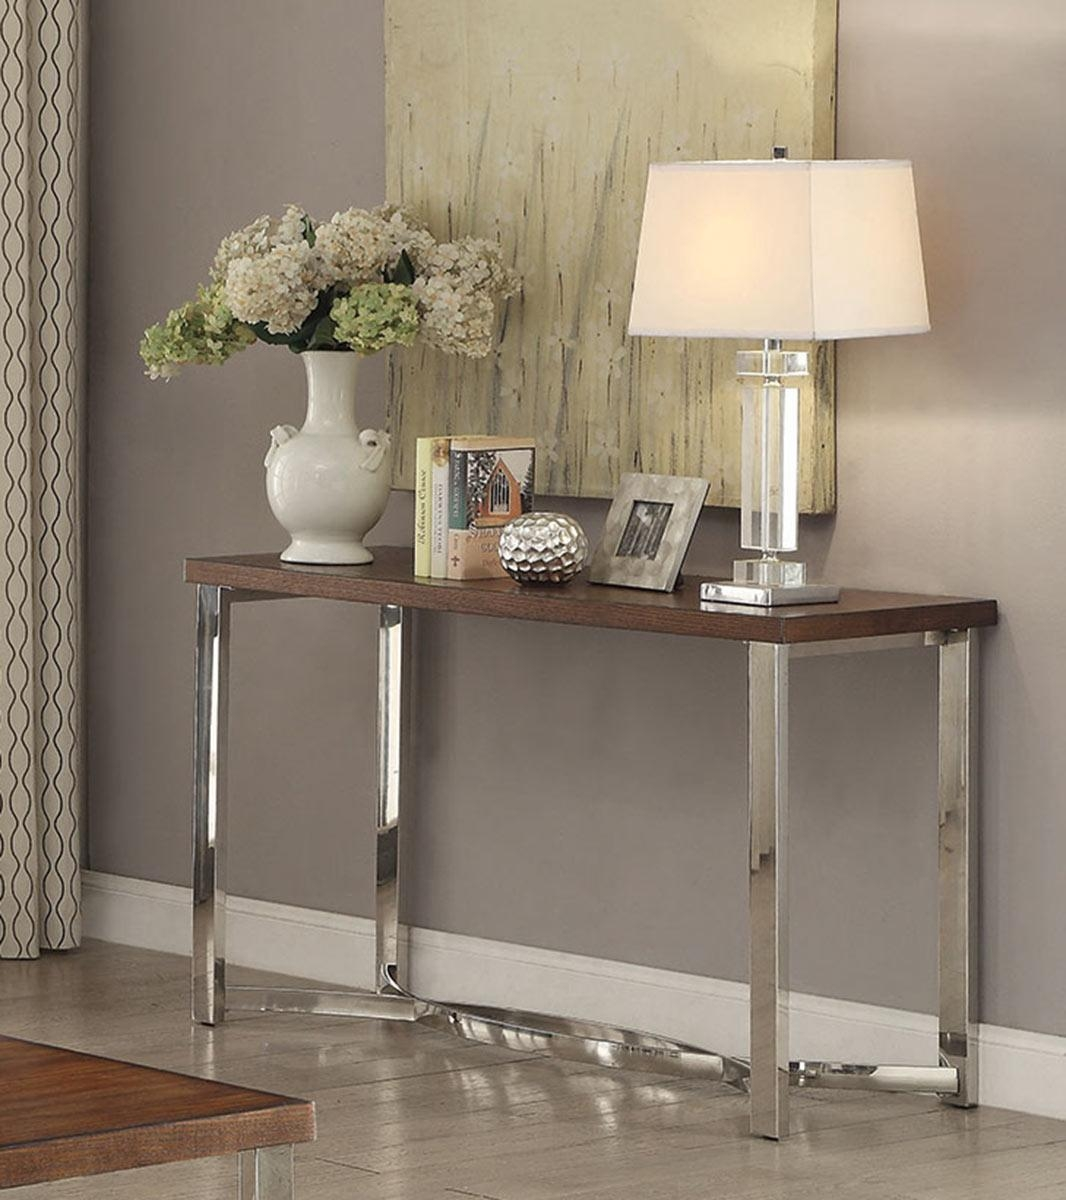 Coaster 705079 Sofa Table – Dark Brown/chrome 705079 At Homelement Pertaining To Chrome Sofa Tables (Image 4 of 20)